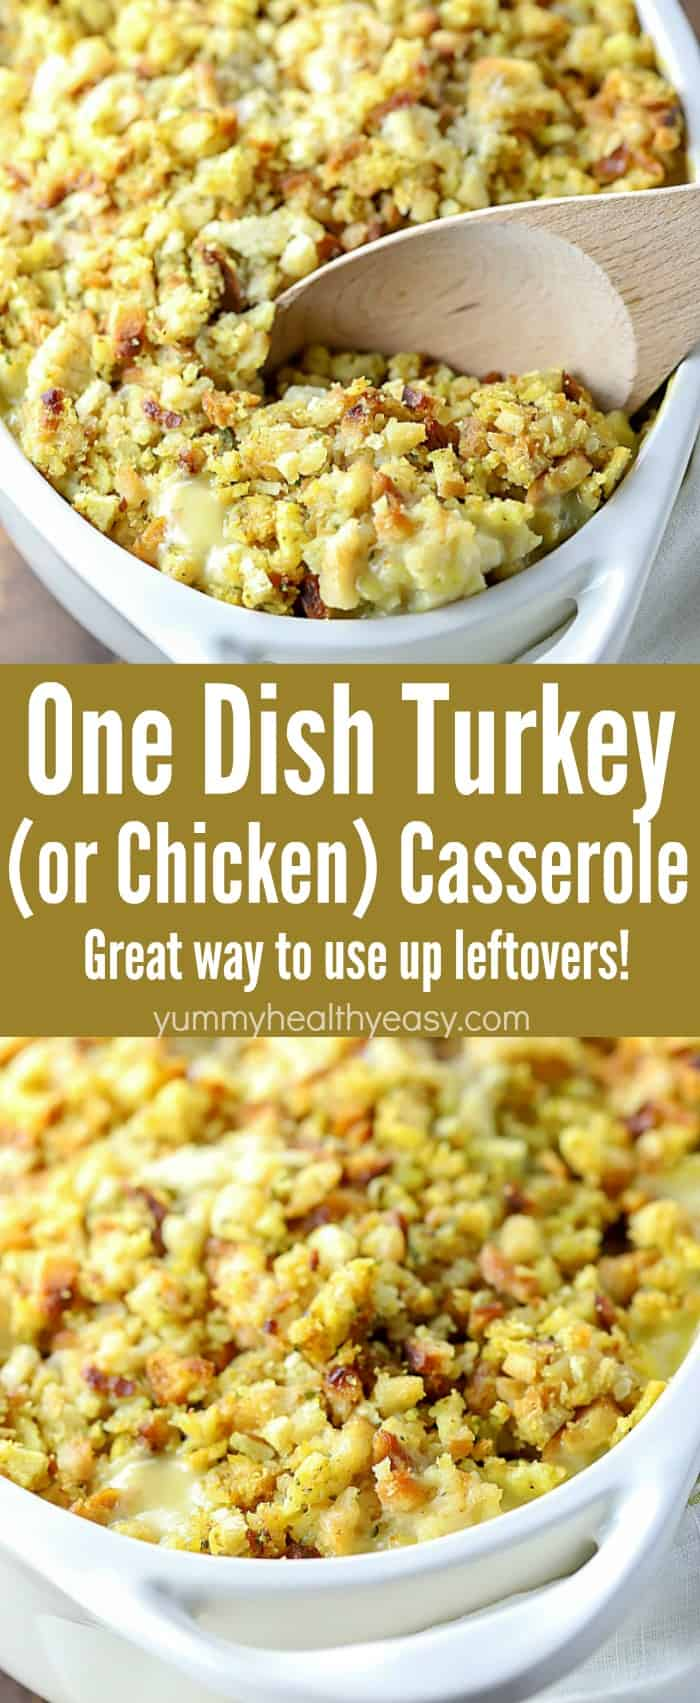 You will LOVE this Easy One Dish Turkey (or Chicken) Casserole Recipe! So super easy to make, only a few ingredients needed and uses all those leftovers you don't know what to do with!